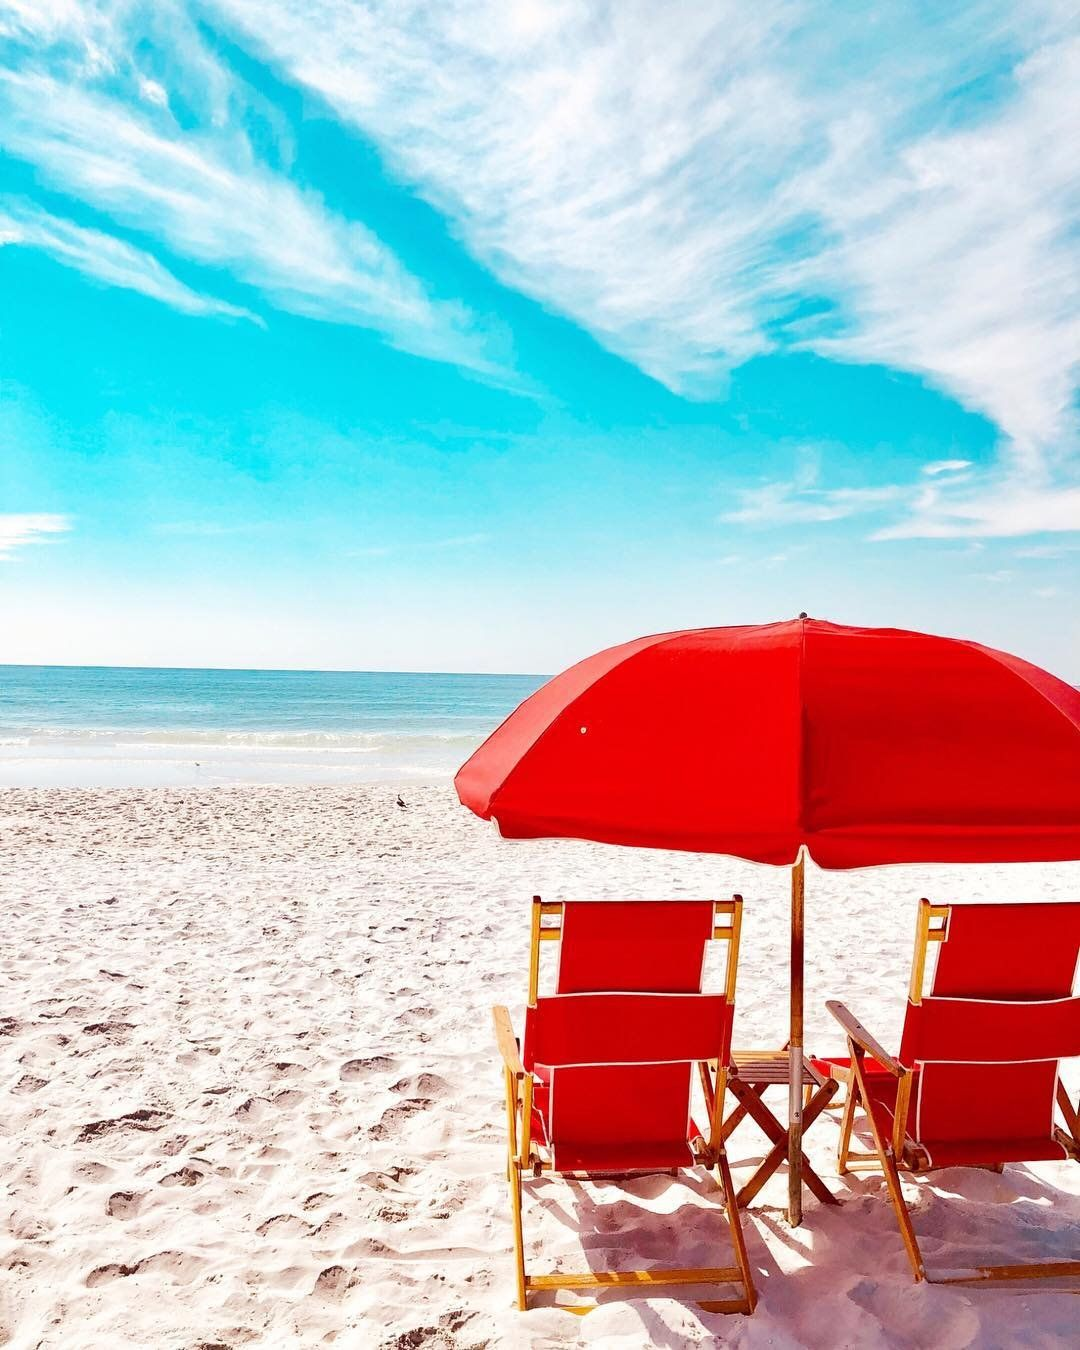 Come And Claim Your Beach Chair Spend The Day On The Beaches Of Pensacola Or Perdido Key Florida Take In The Beautiful Locations Pensacola Pensacola Florida